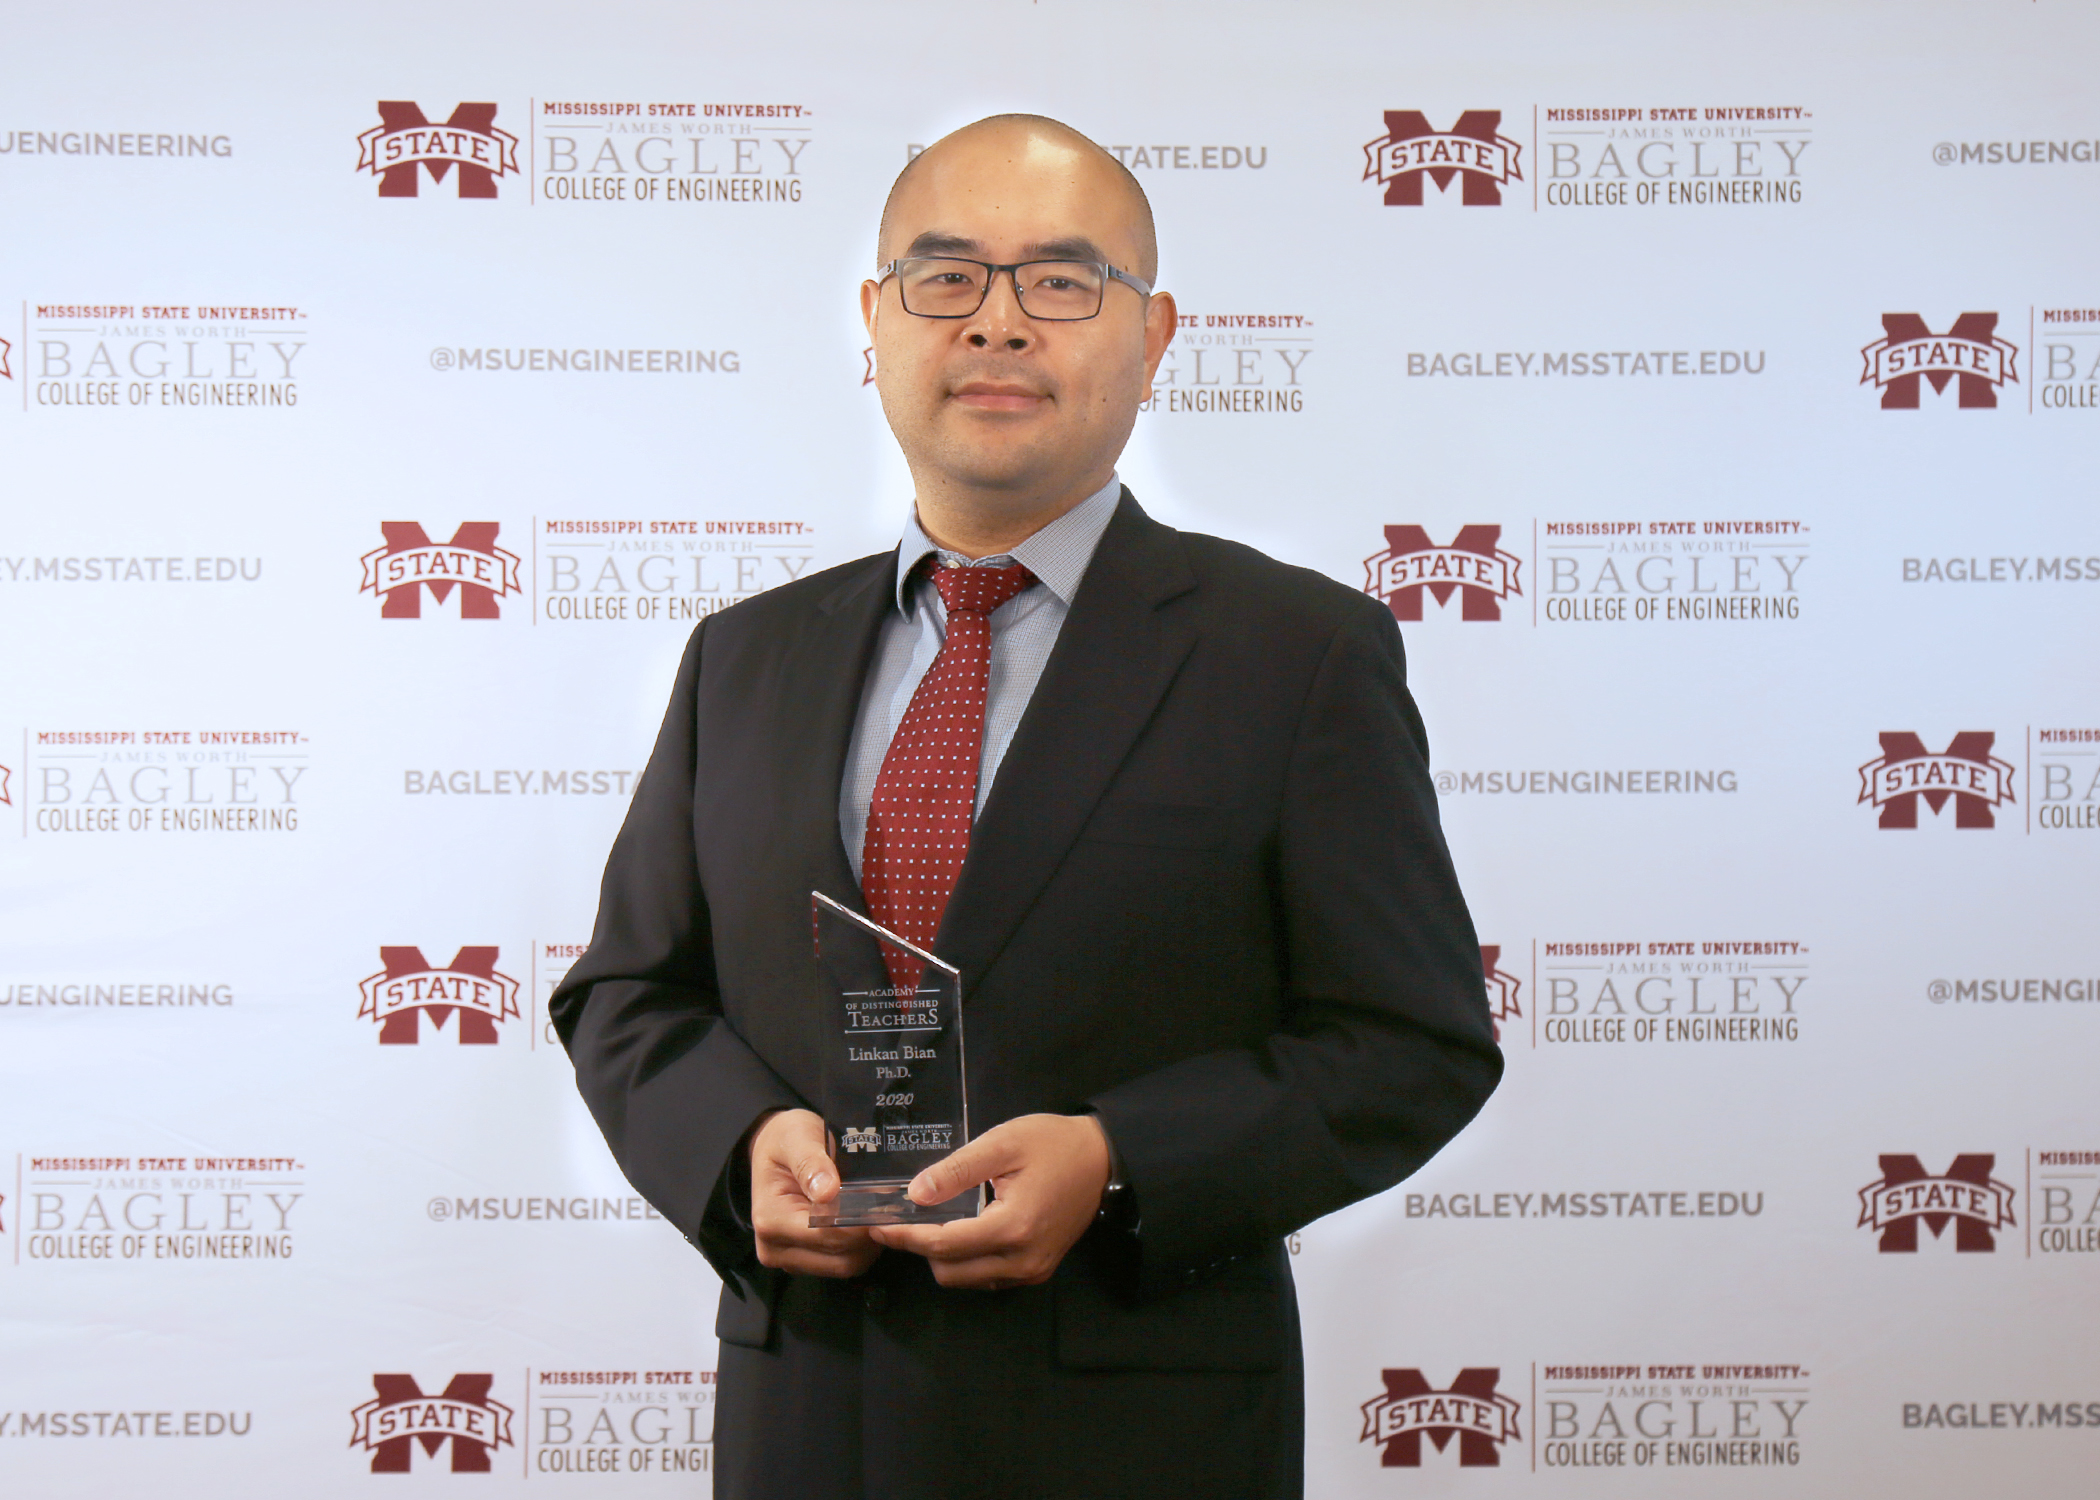 Academy of Distinguished Teachers – Linkan Bian, Industrial and Systems Engineering